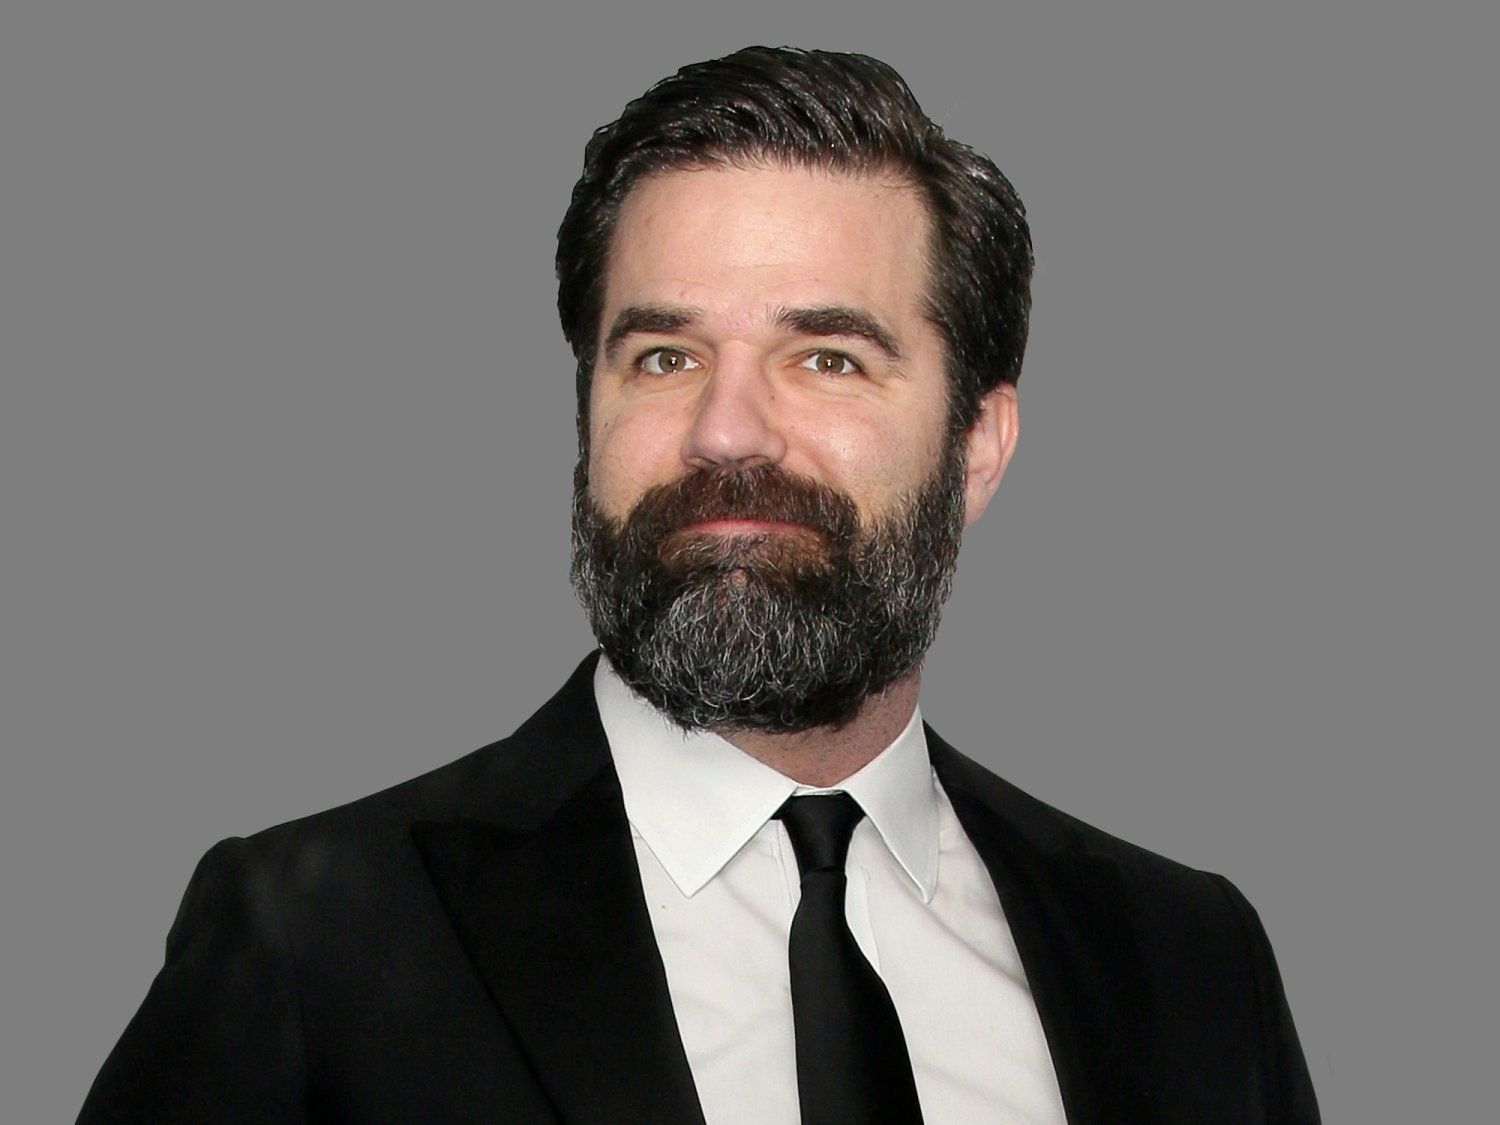 Rob Delaney Confirms Birth Of His Fourth Child Just Months After Death Of His